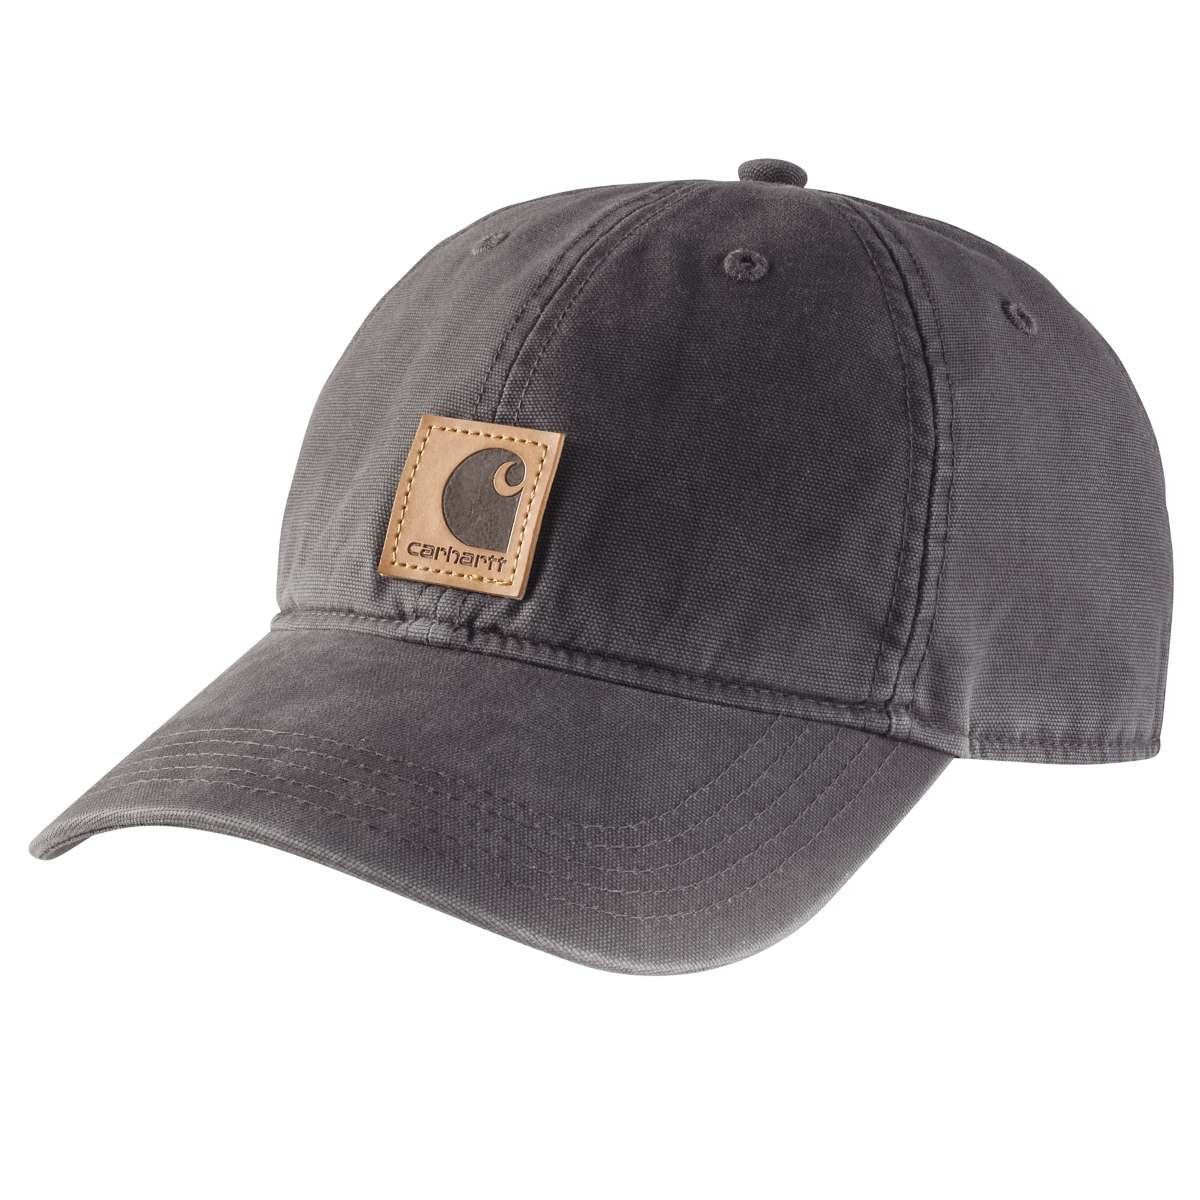 8d04fc6c2a4779 Carhartt Men's Black Odessa Cap | Products | Hats, Mens caps, Canvas hat